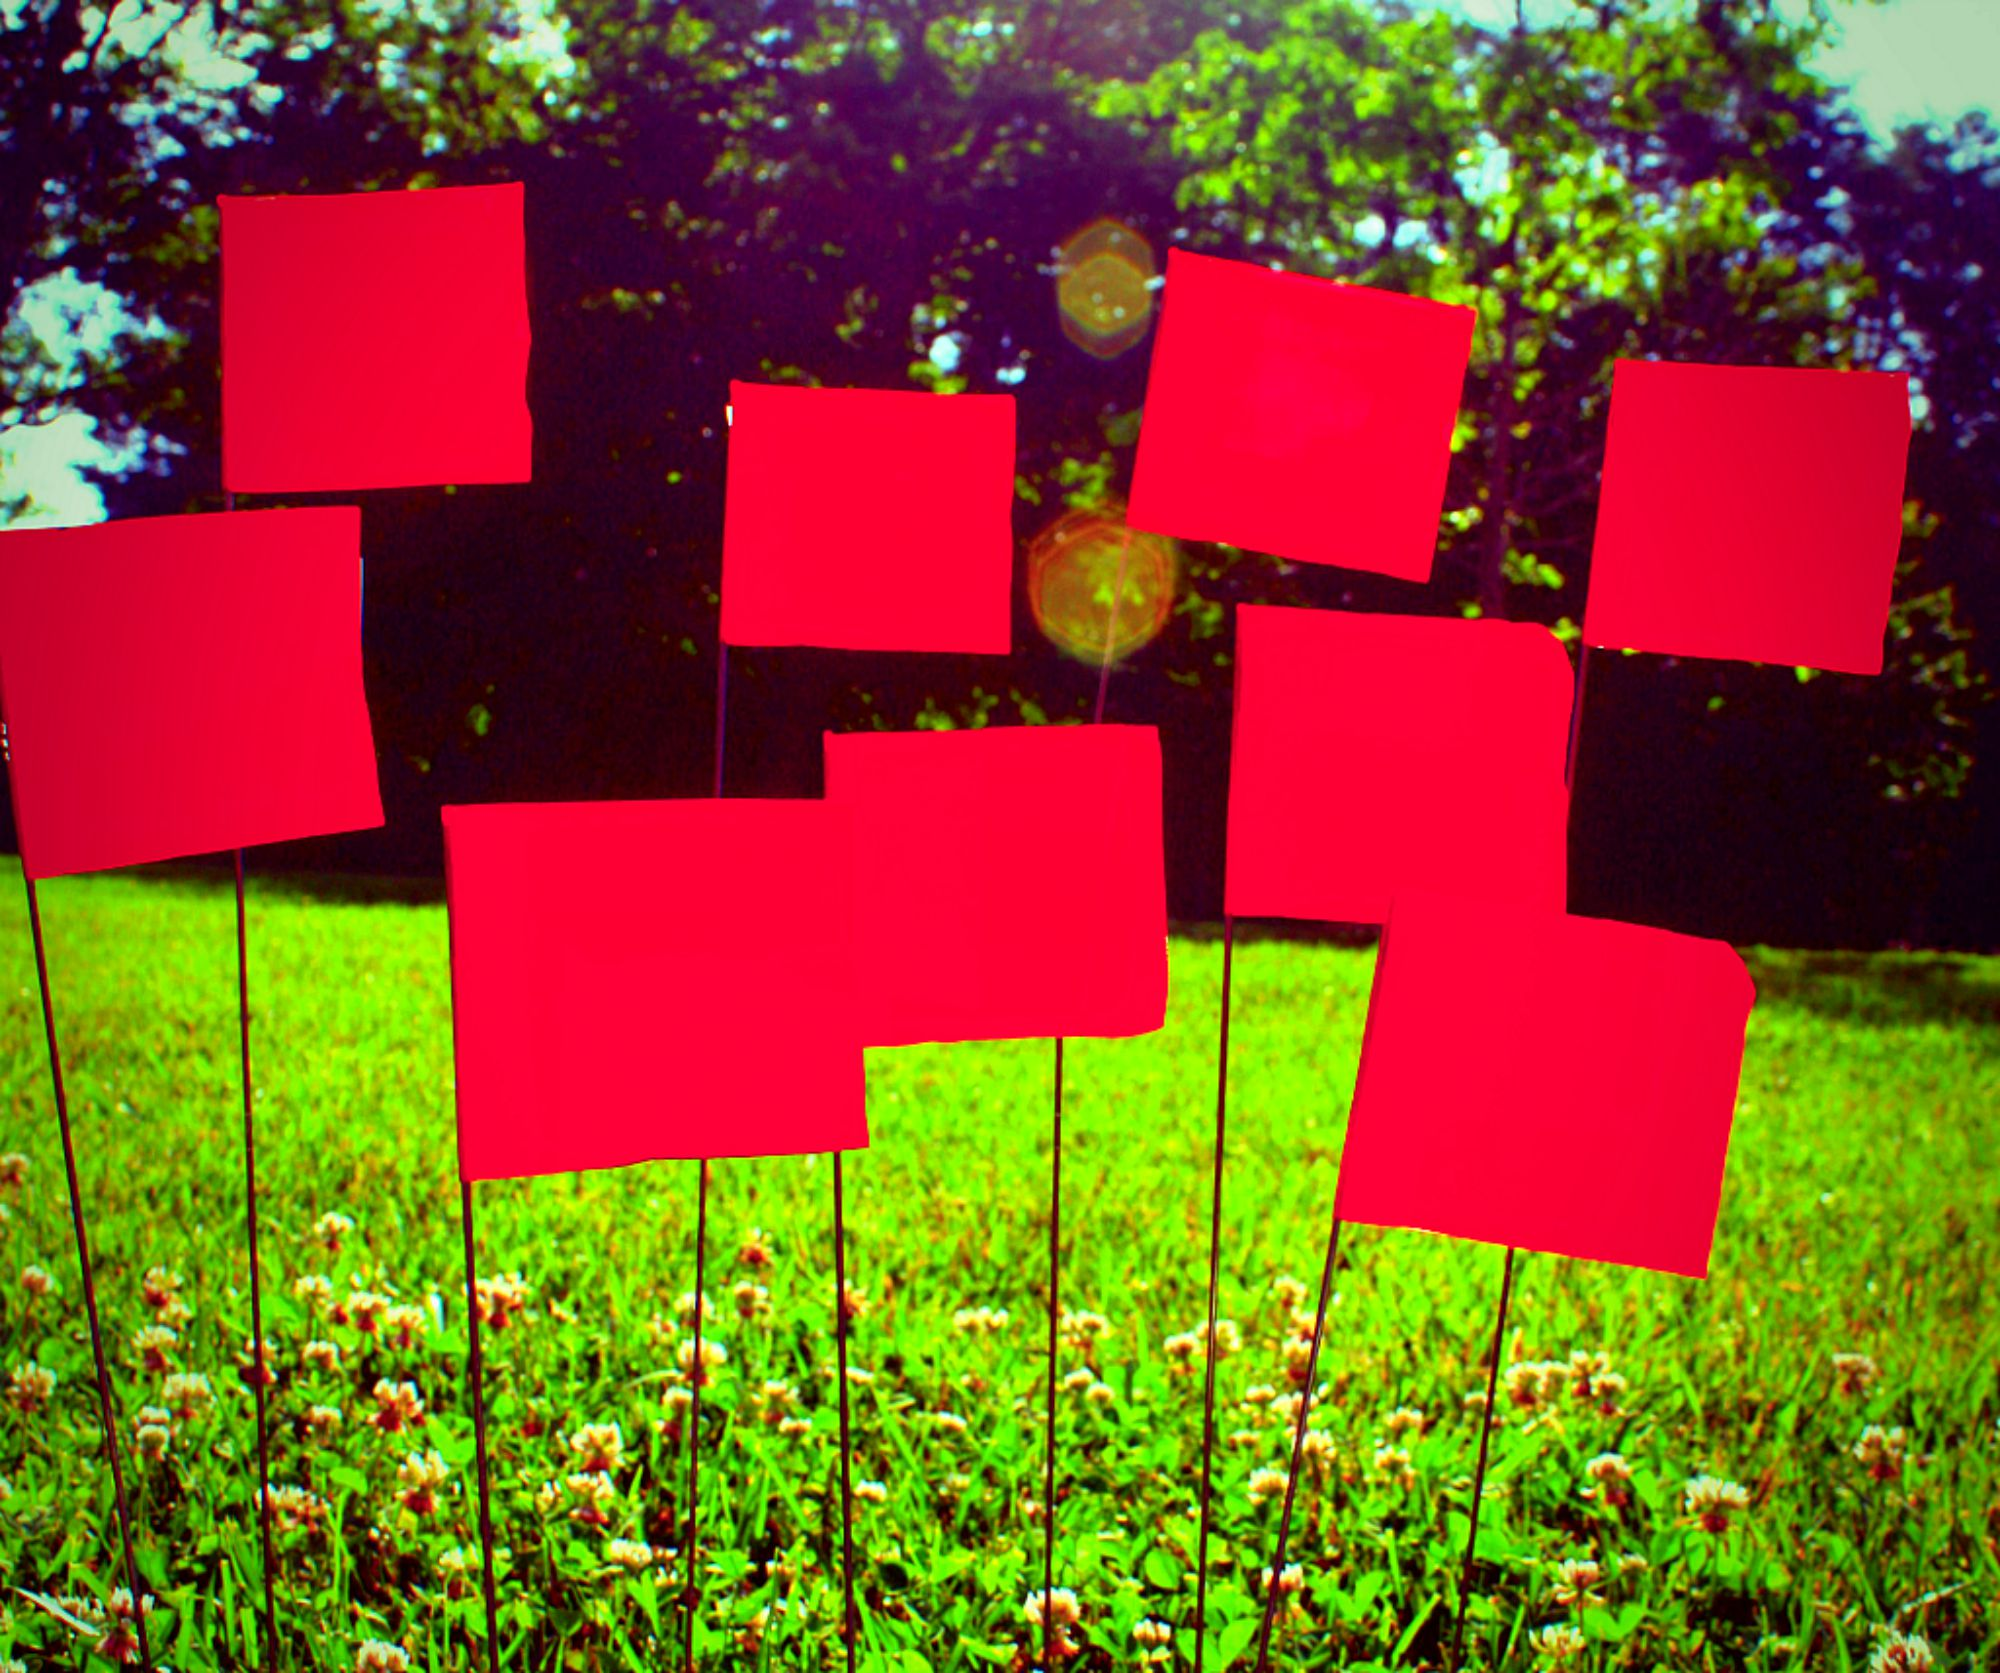 Red flags on the campus lawn.